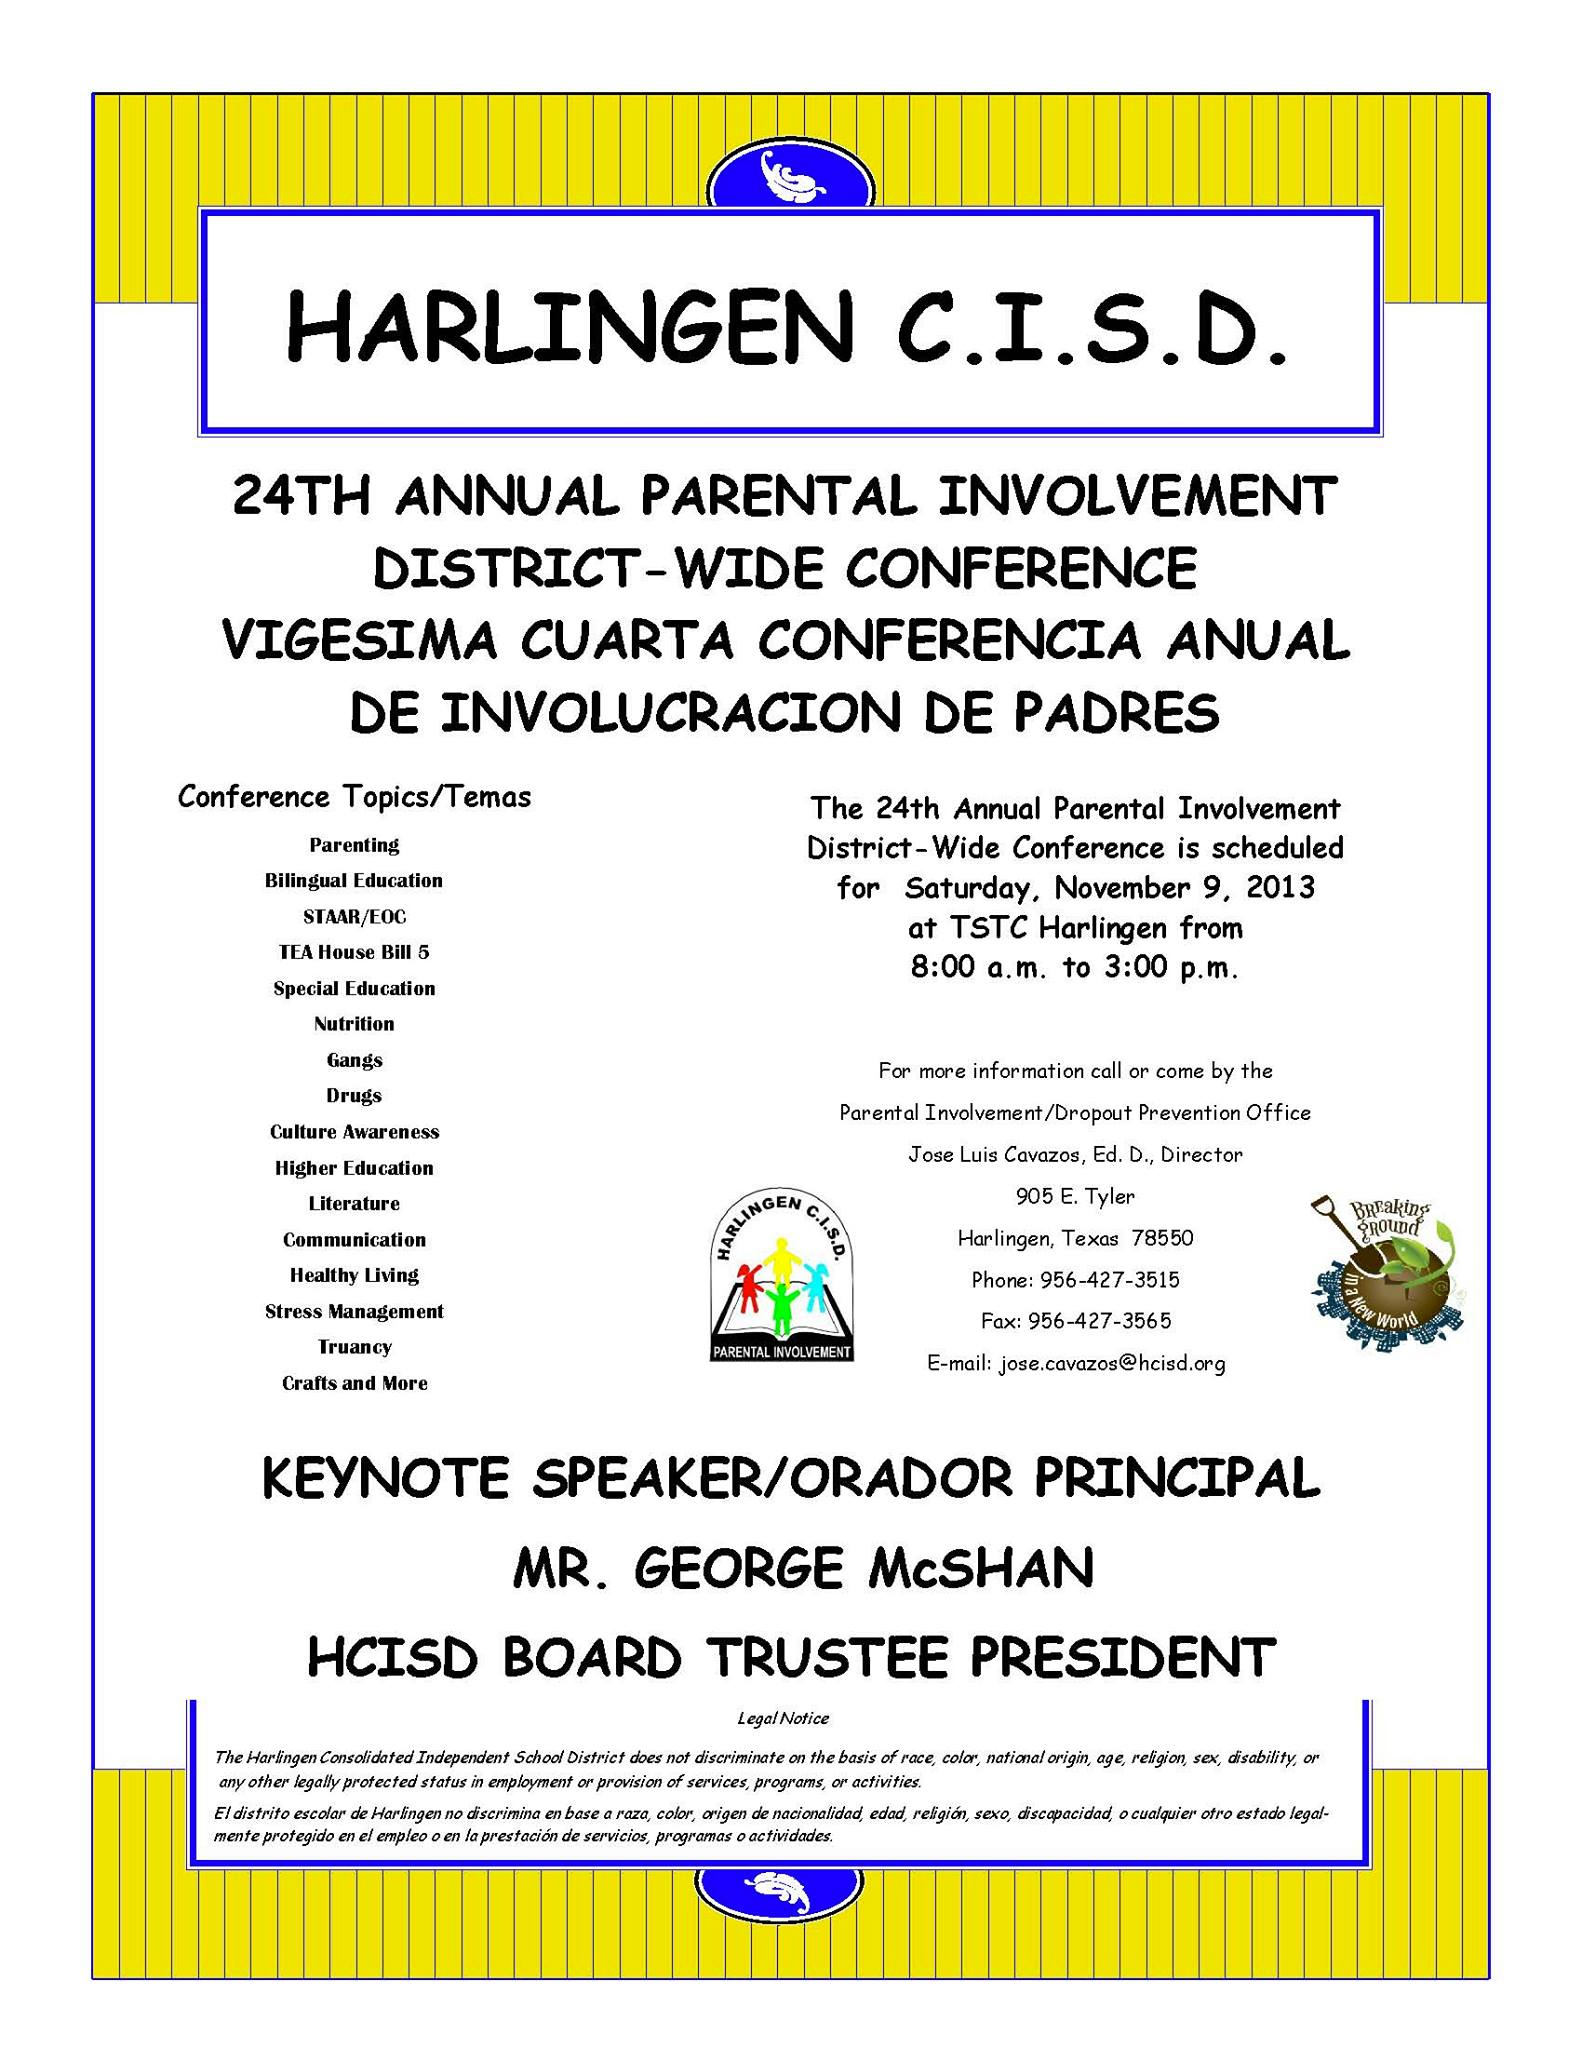 HCISD hosts 24th Annual Parental Involvement Conference